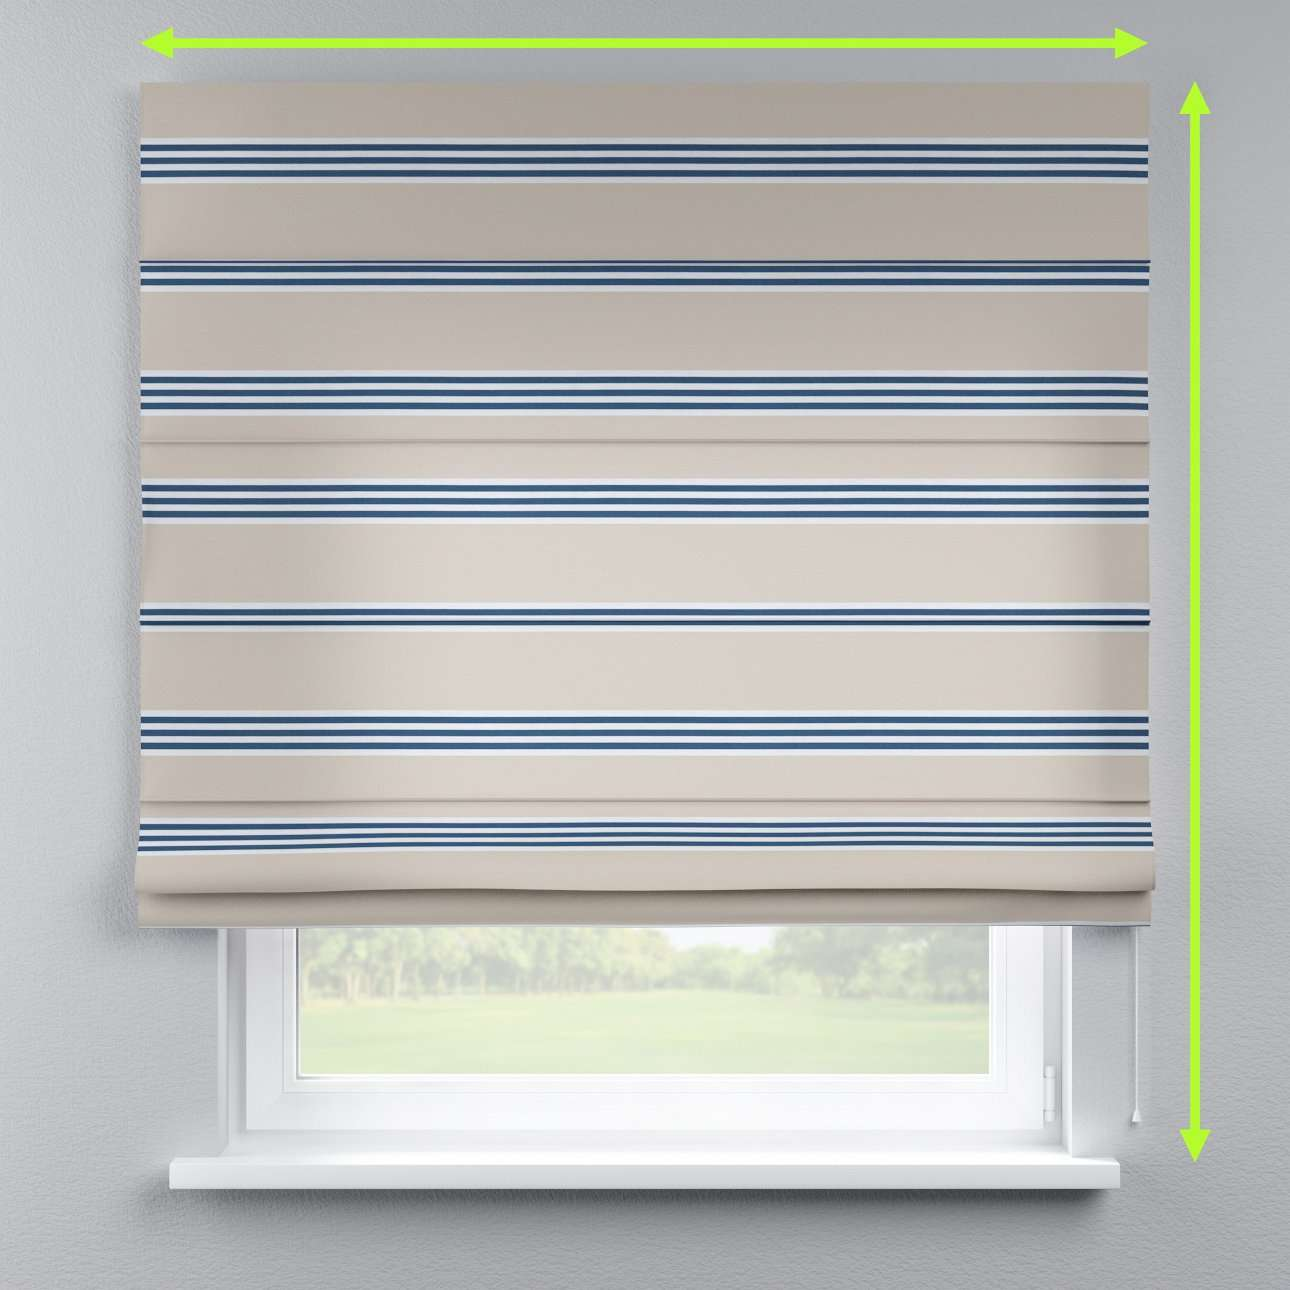 Capri roman blind in collection Marina, fabric: 140-60